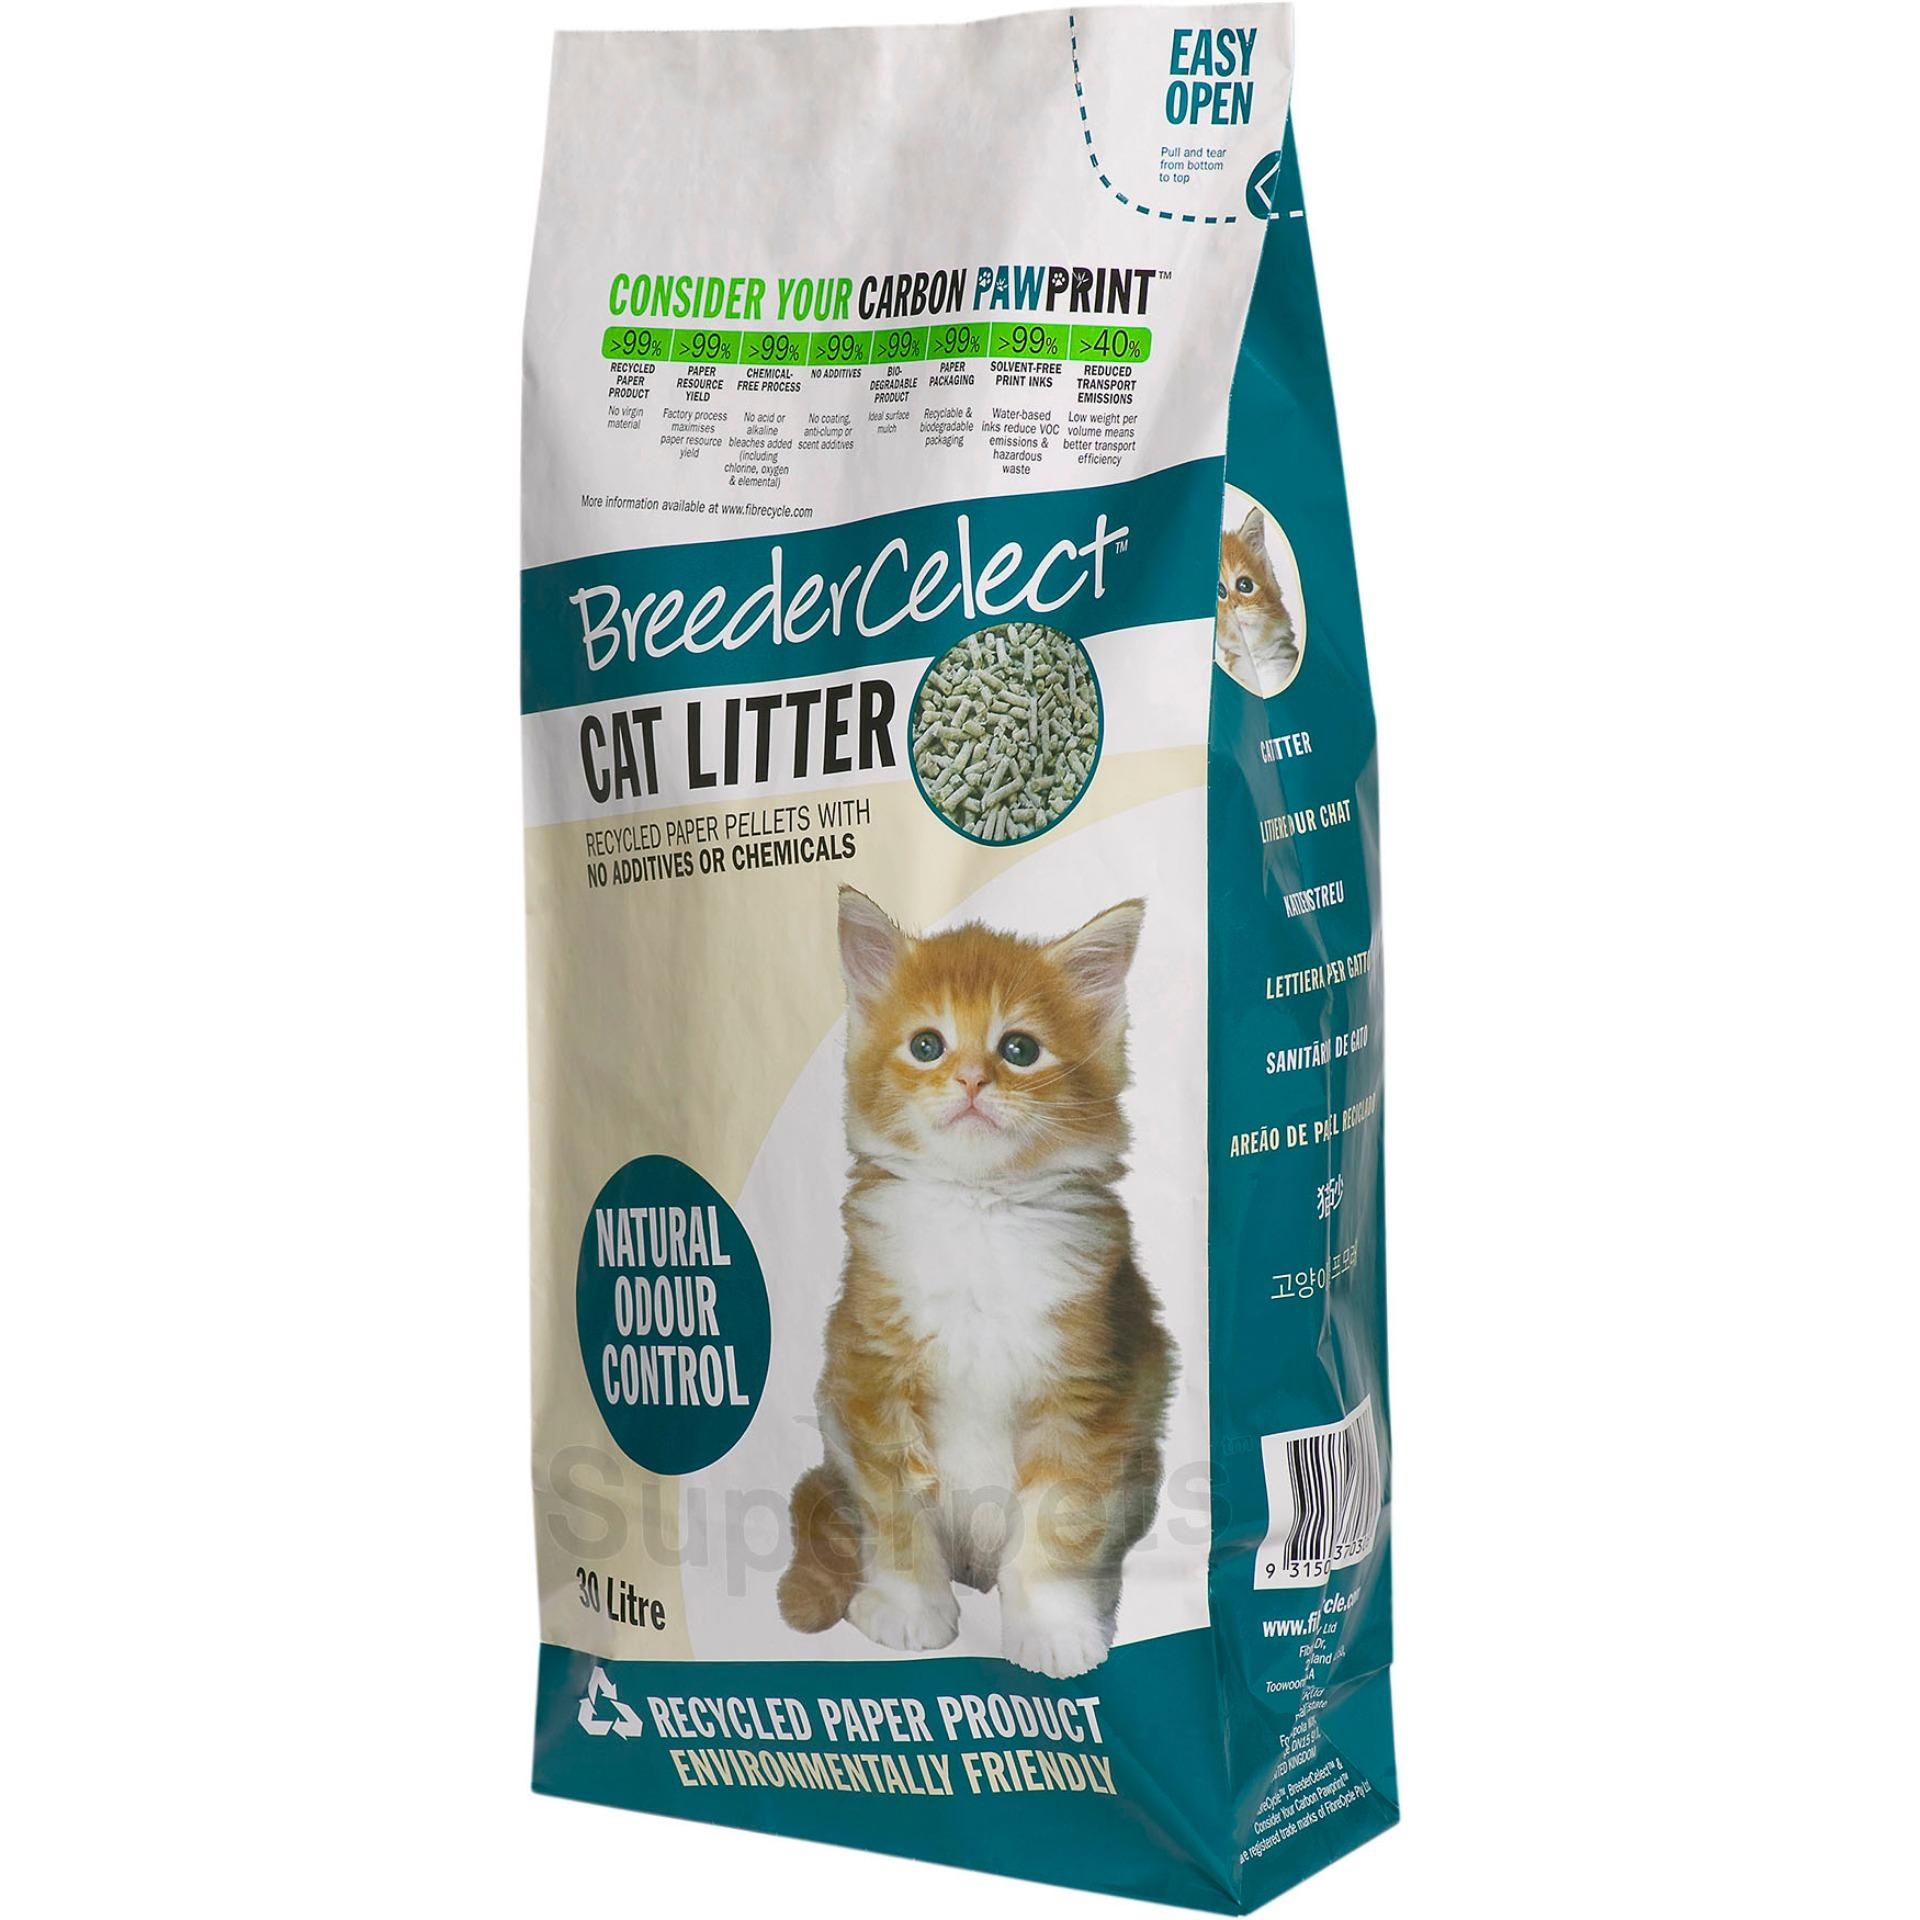 Price Breeder Celect Cat Litter Recycled Paper Pellets 30L Breeder Celect New